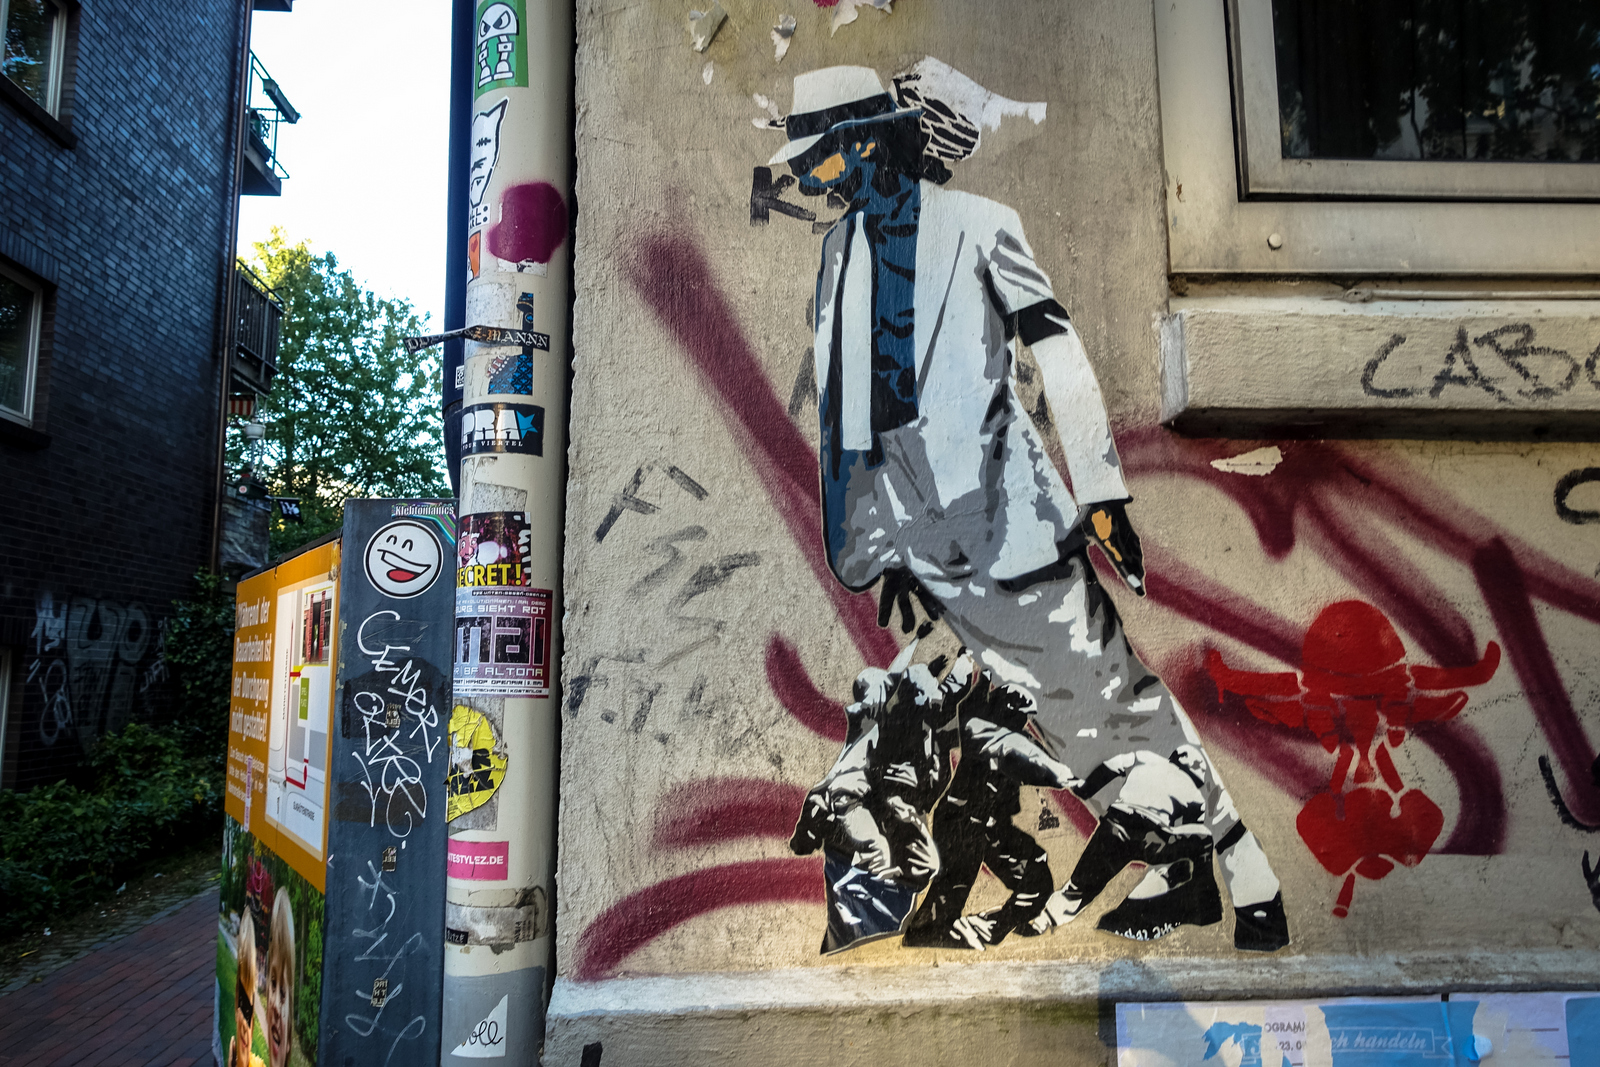 streetart in karoviertel hamburg, sept 2015